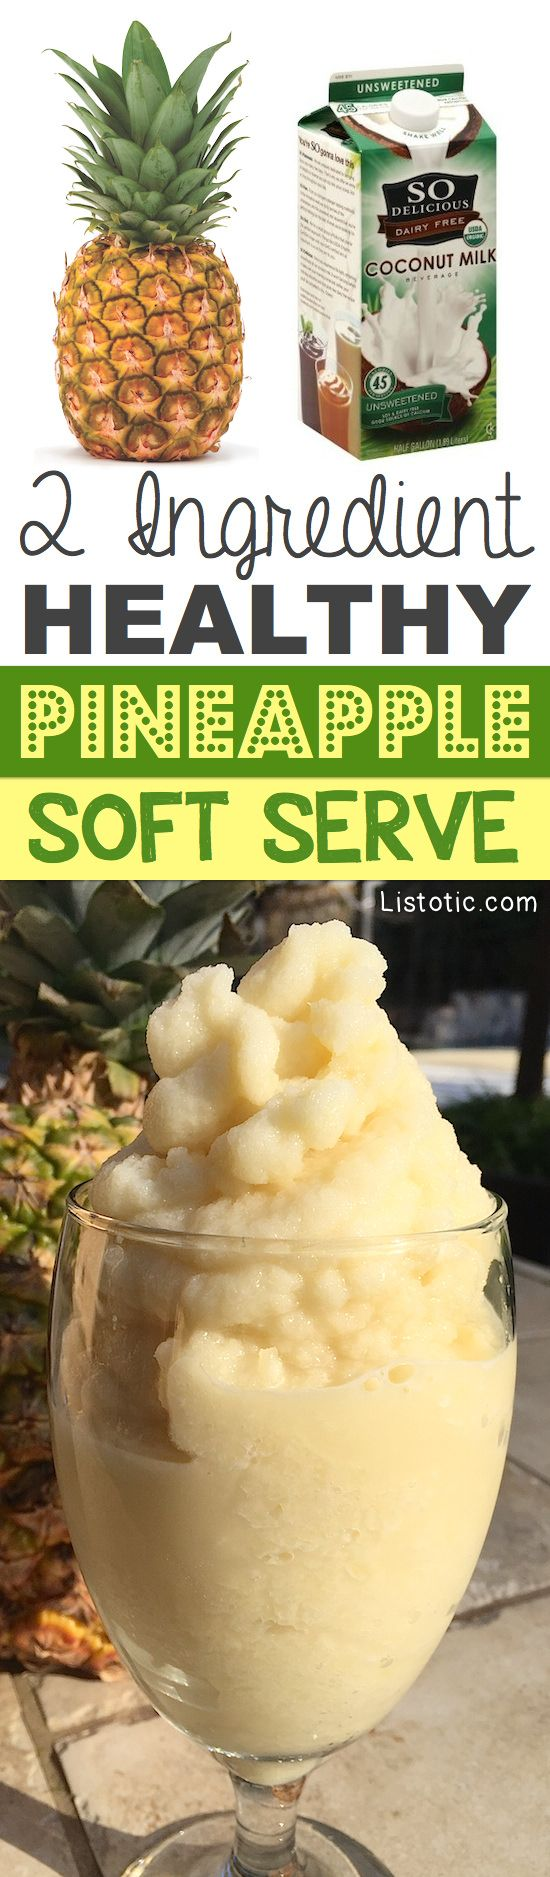 This 2 Ingredient dairy-free and healthy pineapple soft serve is similar to a smoothie but thicker and creamier. A must make for summer!